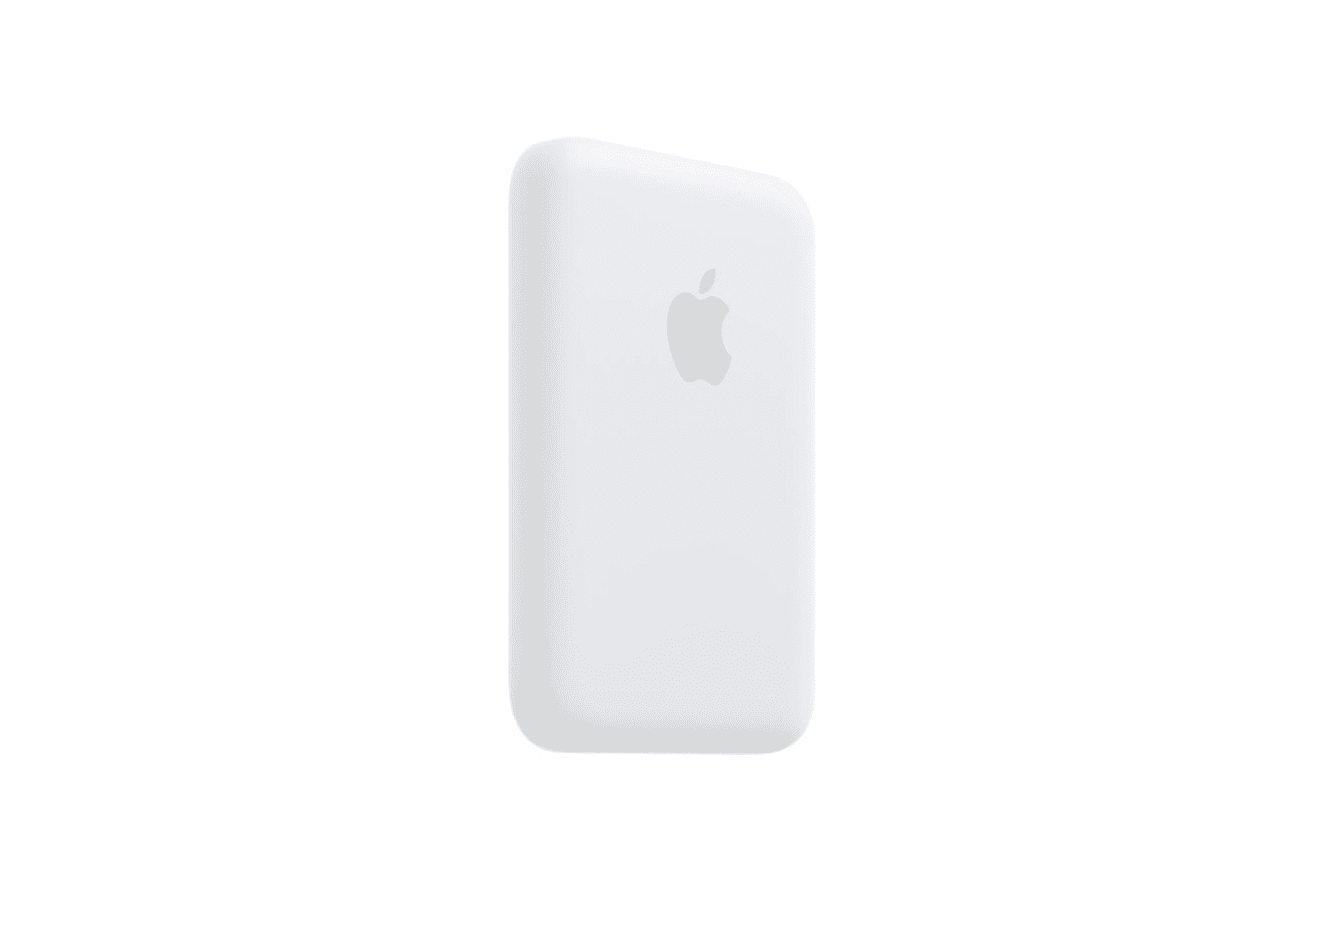 Apple MagSafe Battery Pack in white